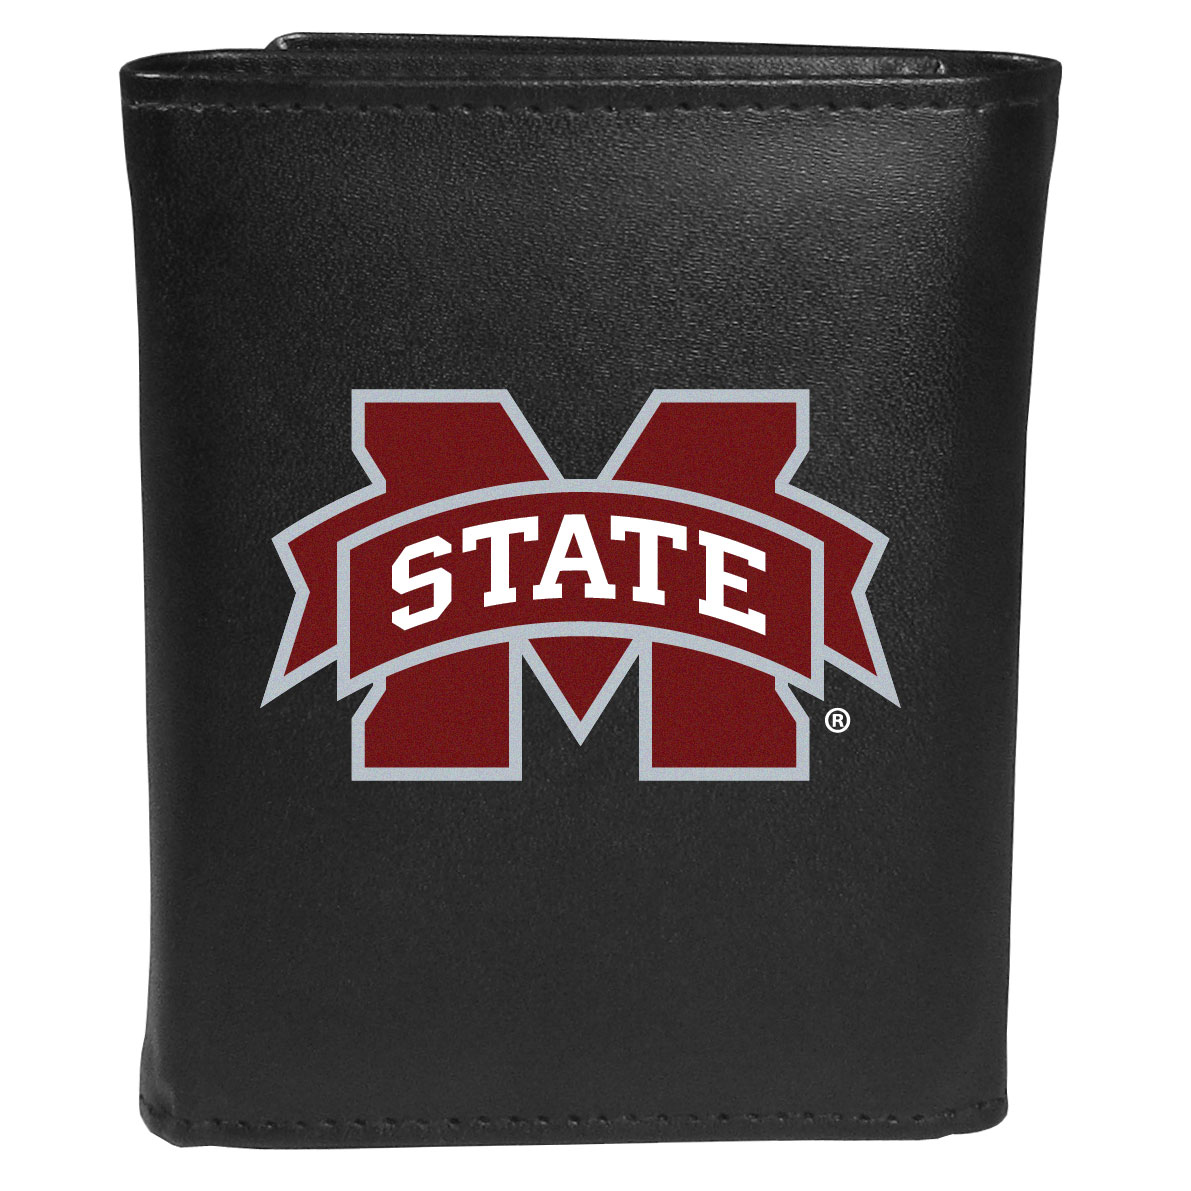 Mississippi St. Bulldogs Leather Tri-fold Wallet, Large Logo - Our classic fine leather tri-fold wallet is meticulously crafted with genuine leather that will age beautifully so you will have a quality wallet for years to come. This is fan apparel at its finest. The wallet is packed with organizational  features; lots of credit card slots, large billfold pocket, and a window ID slot. The front of the wallet features an extra large Mississippi St. Bulldogs printed logo.